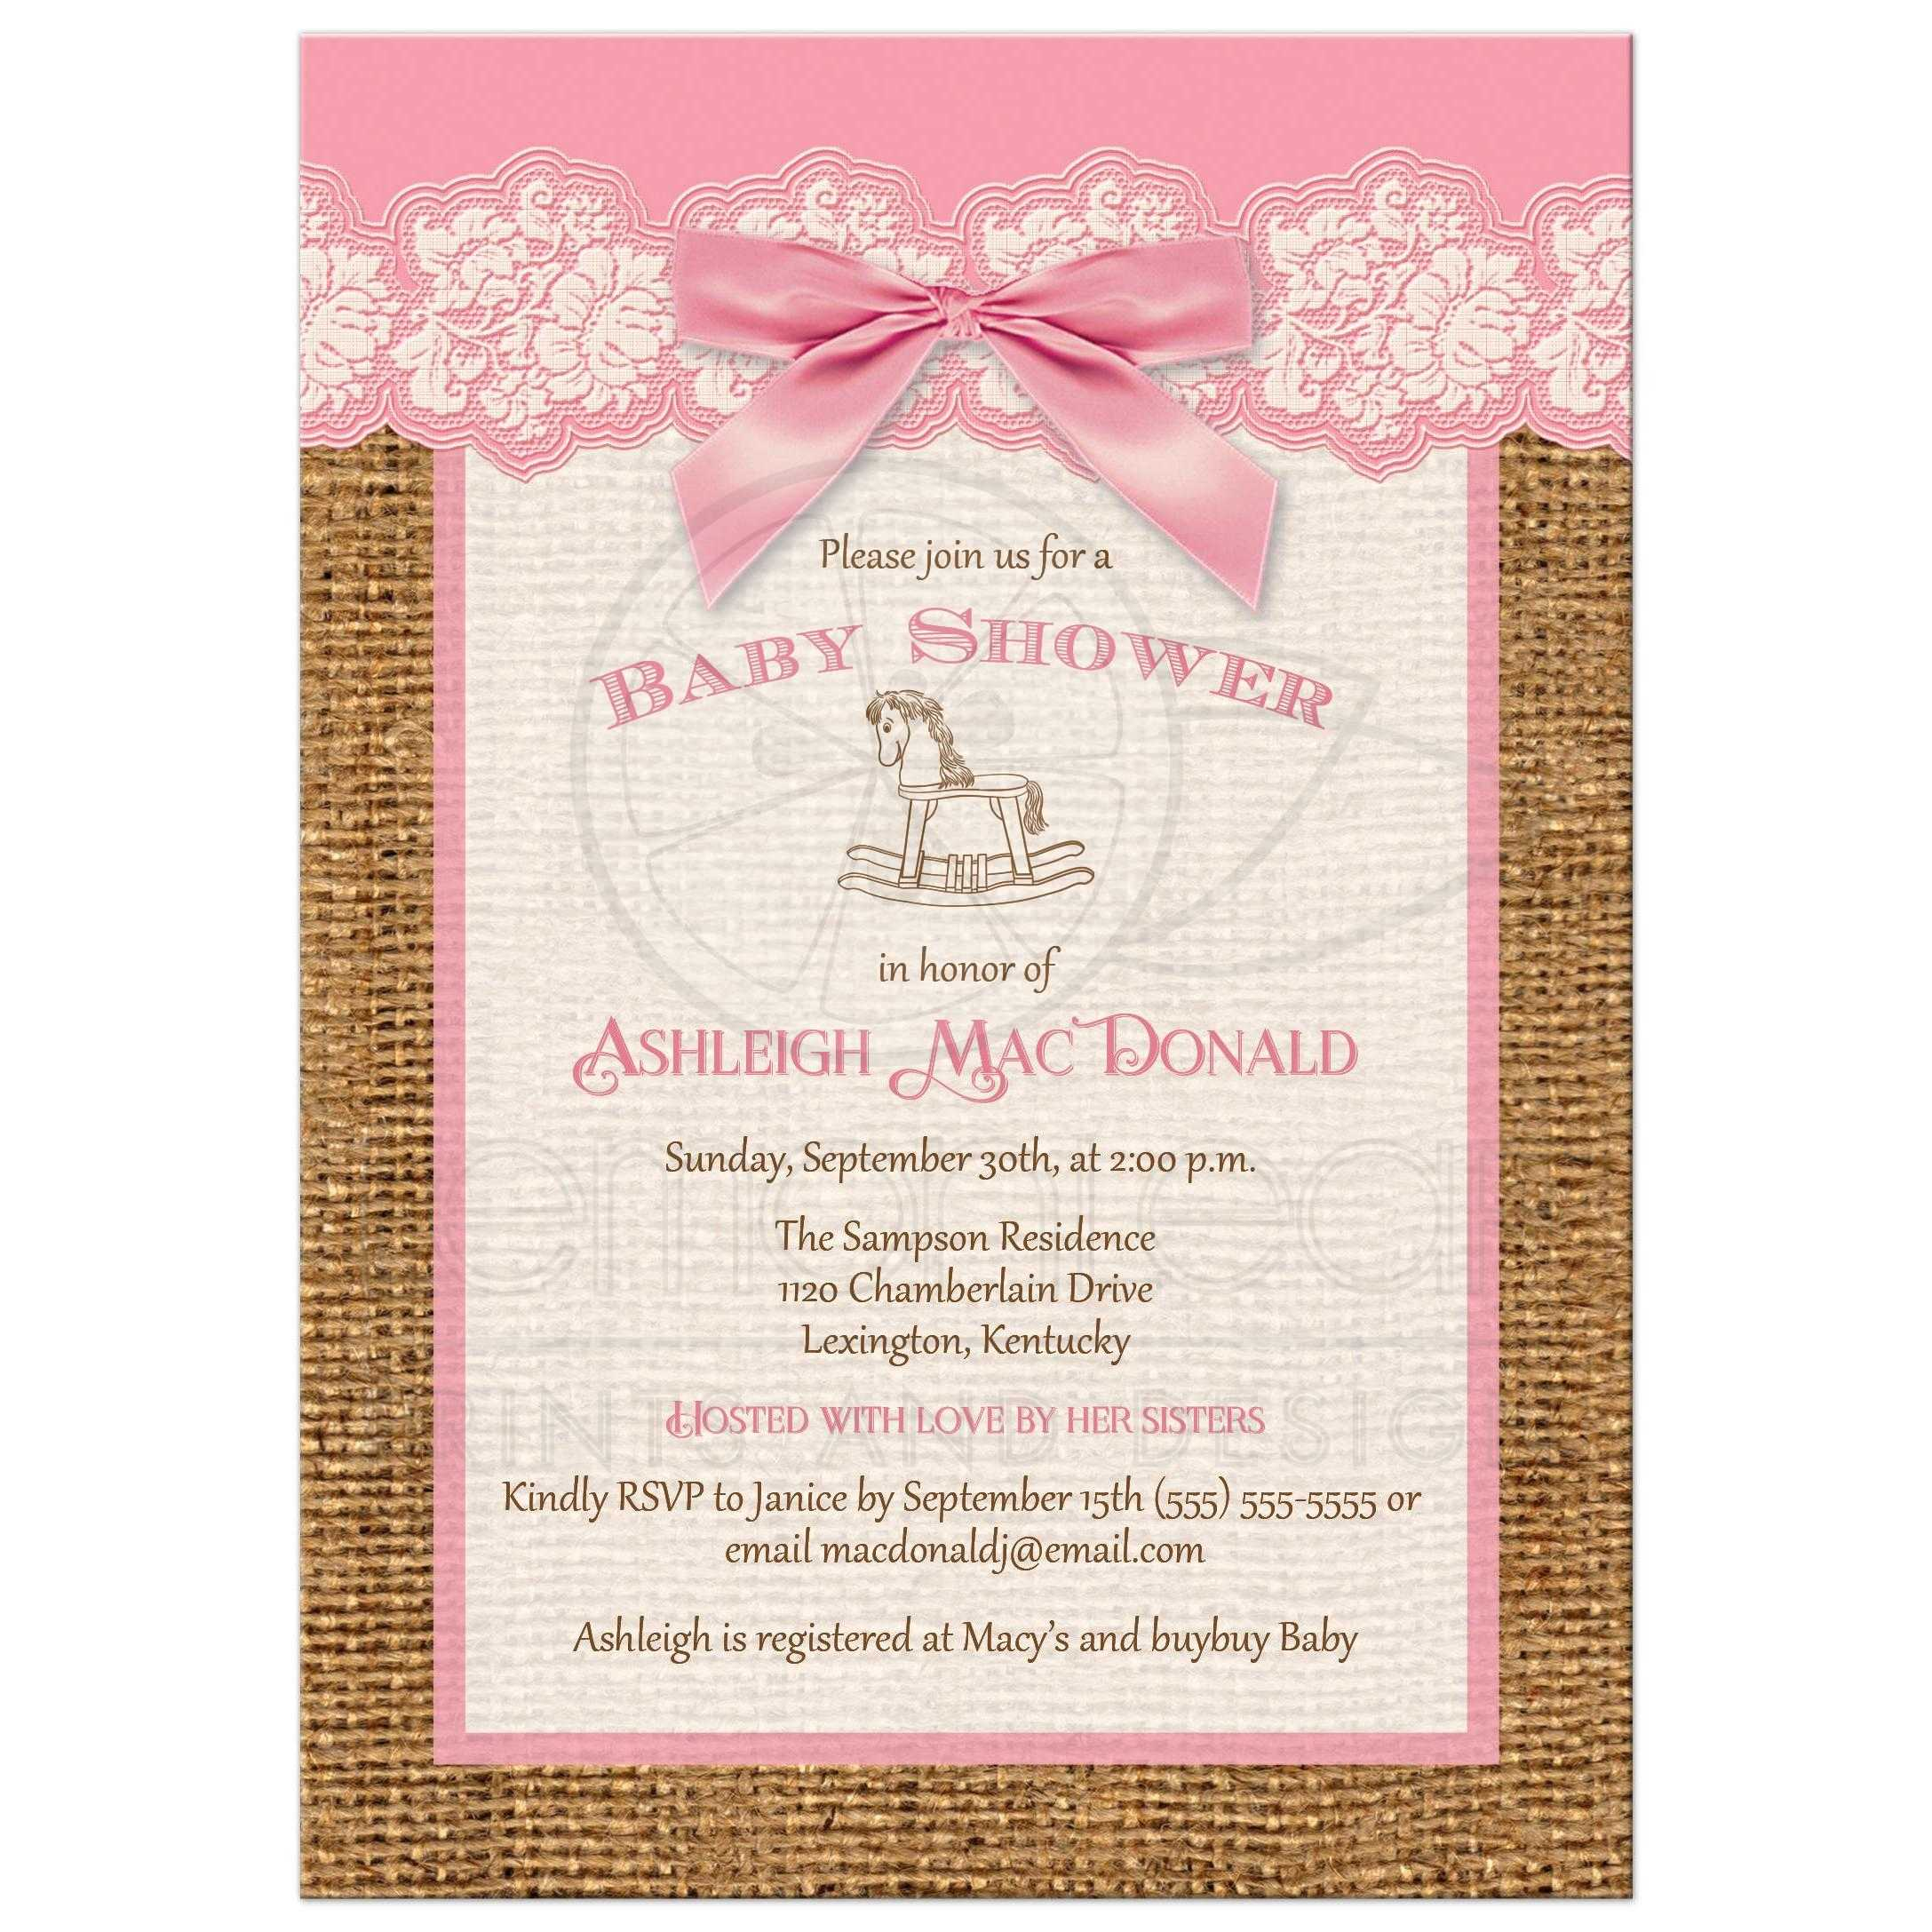 Best Pink, Ivory, And Brown Burlap Baby Shower Invitation With Pink Bow For  A ...